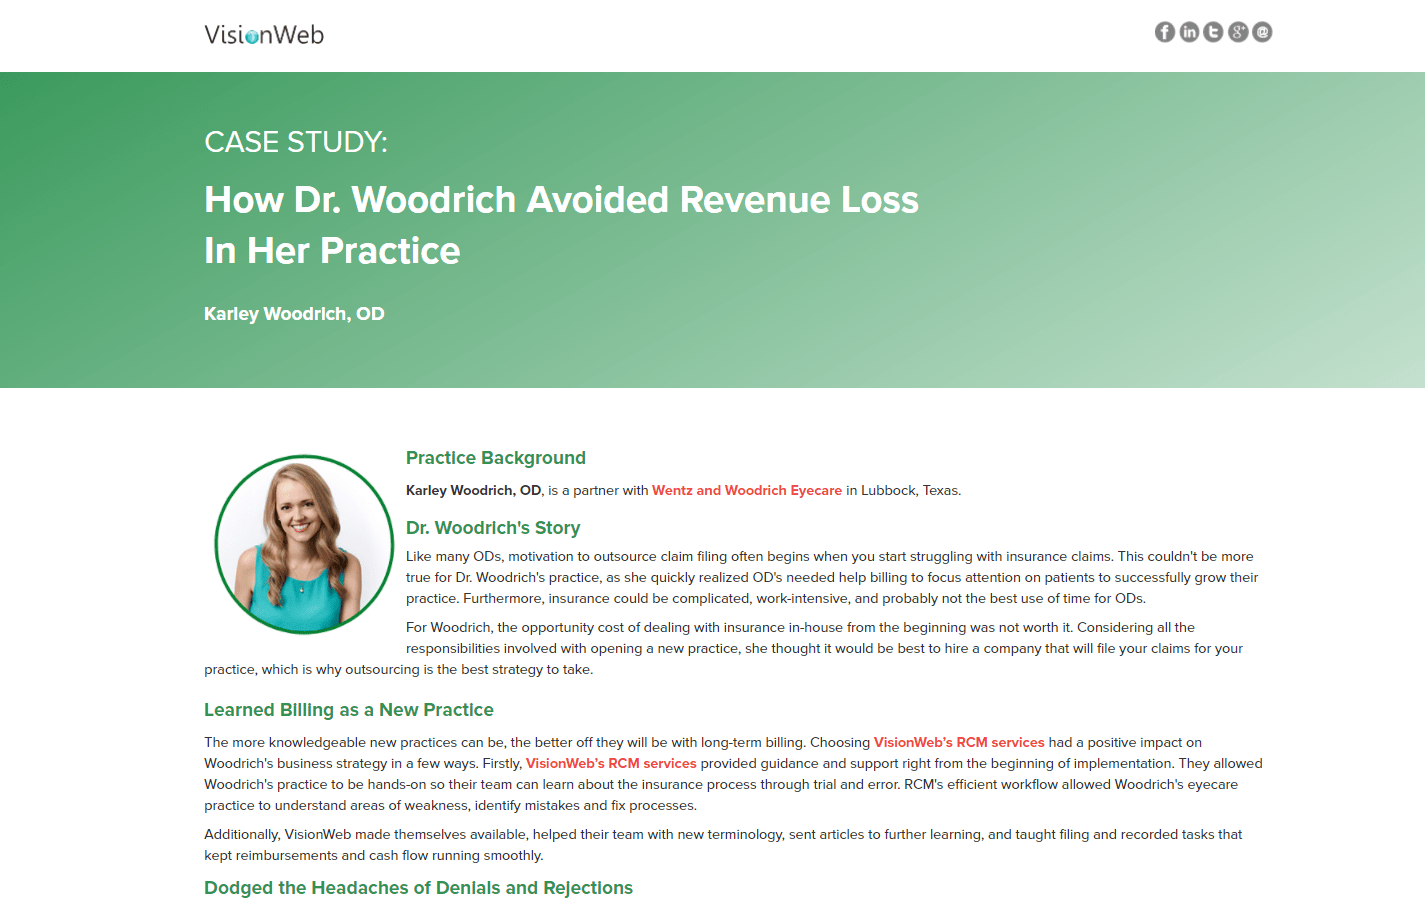 How Dr. Woodrich Avoided Revenue Loss in Her Practice